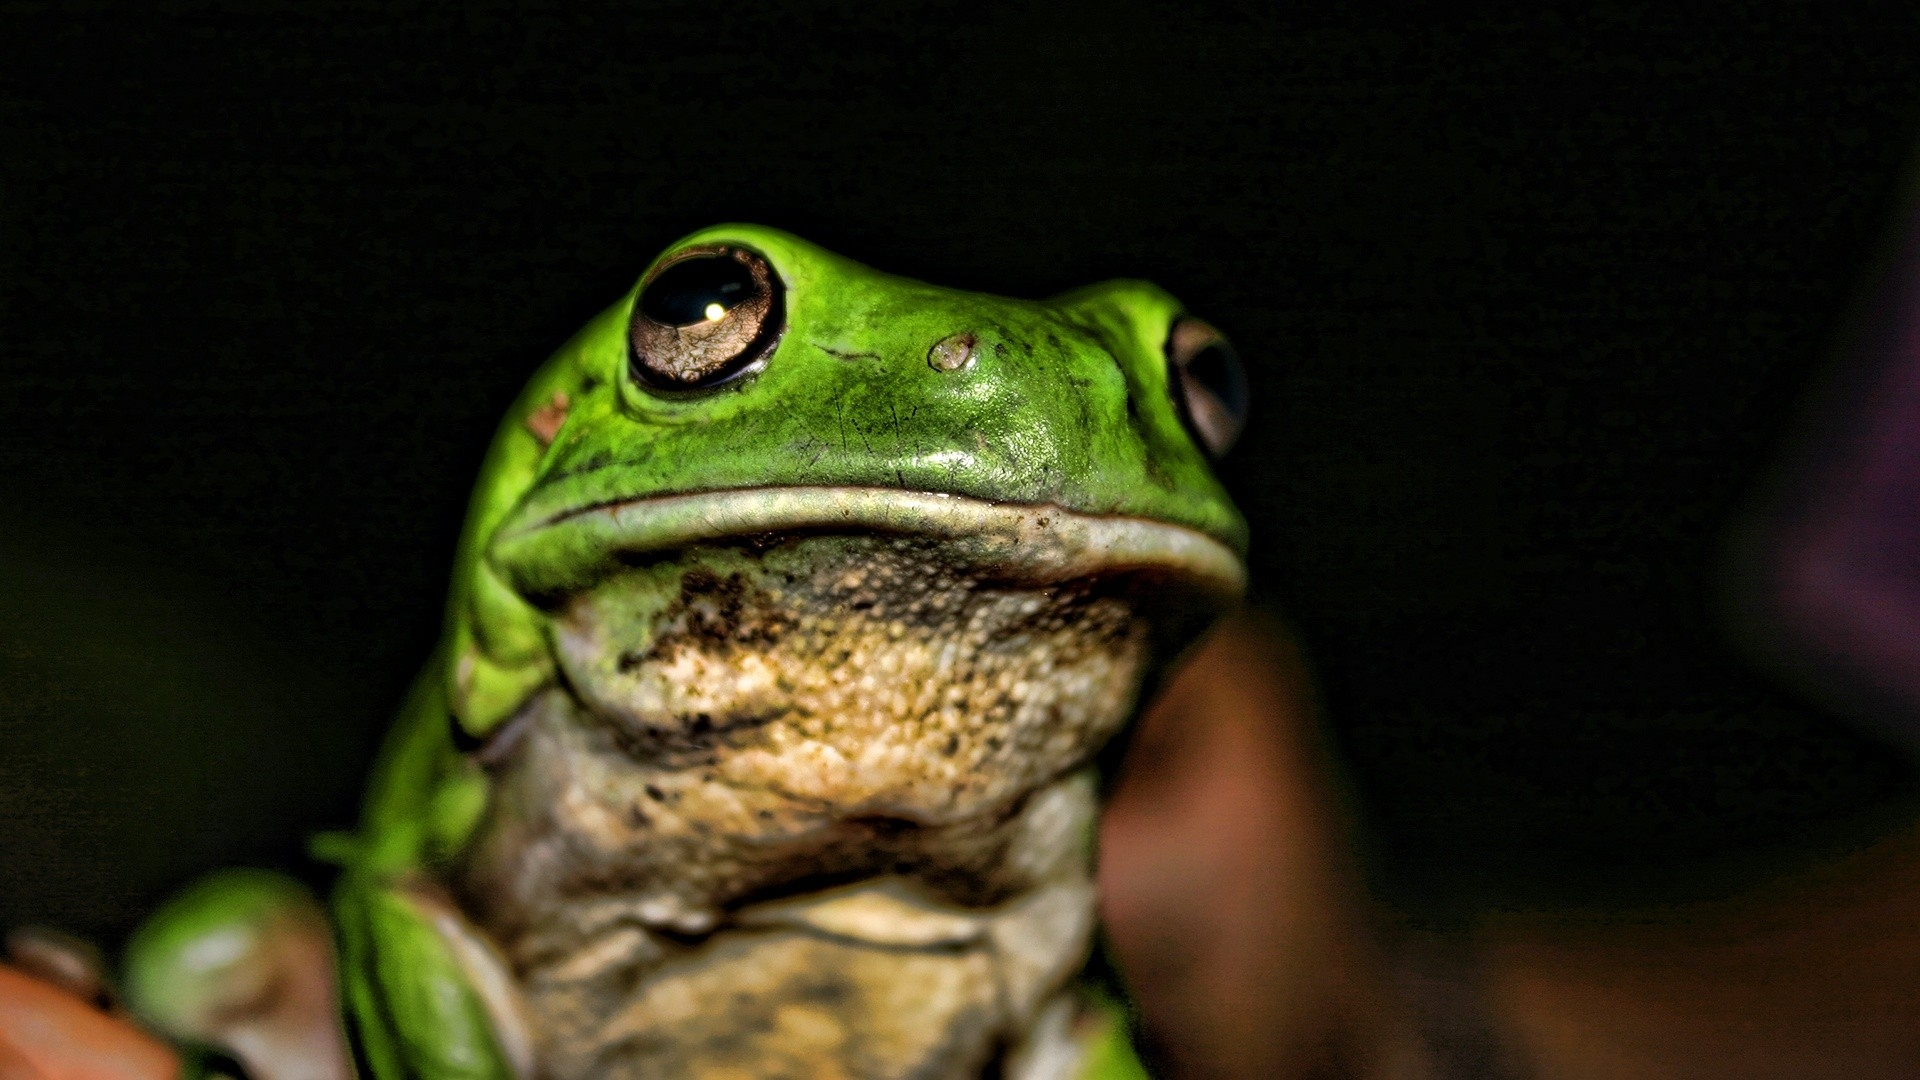 Earnings Disclaimer >> Download Wallpaper 1920x1080 frog, face, color, bright, shadow Full HD 1080p HD Background